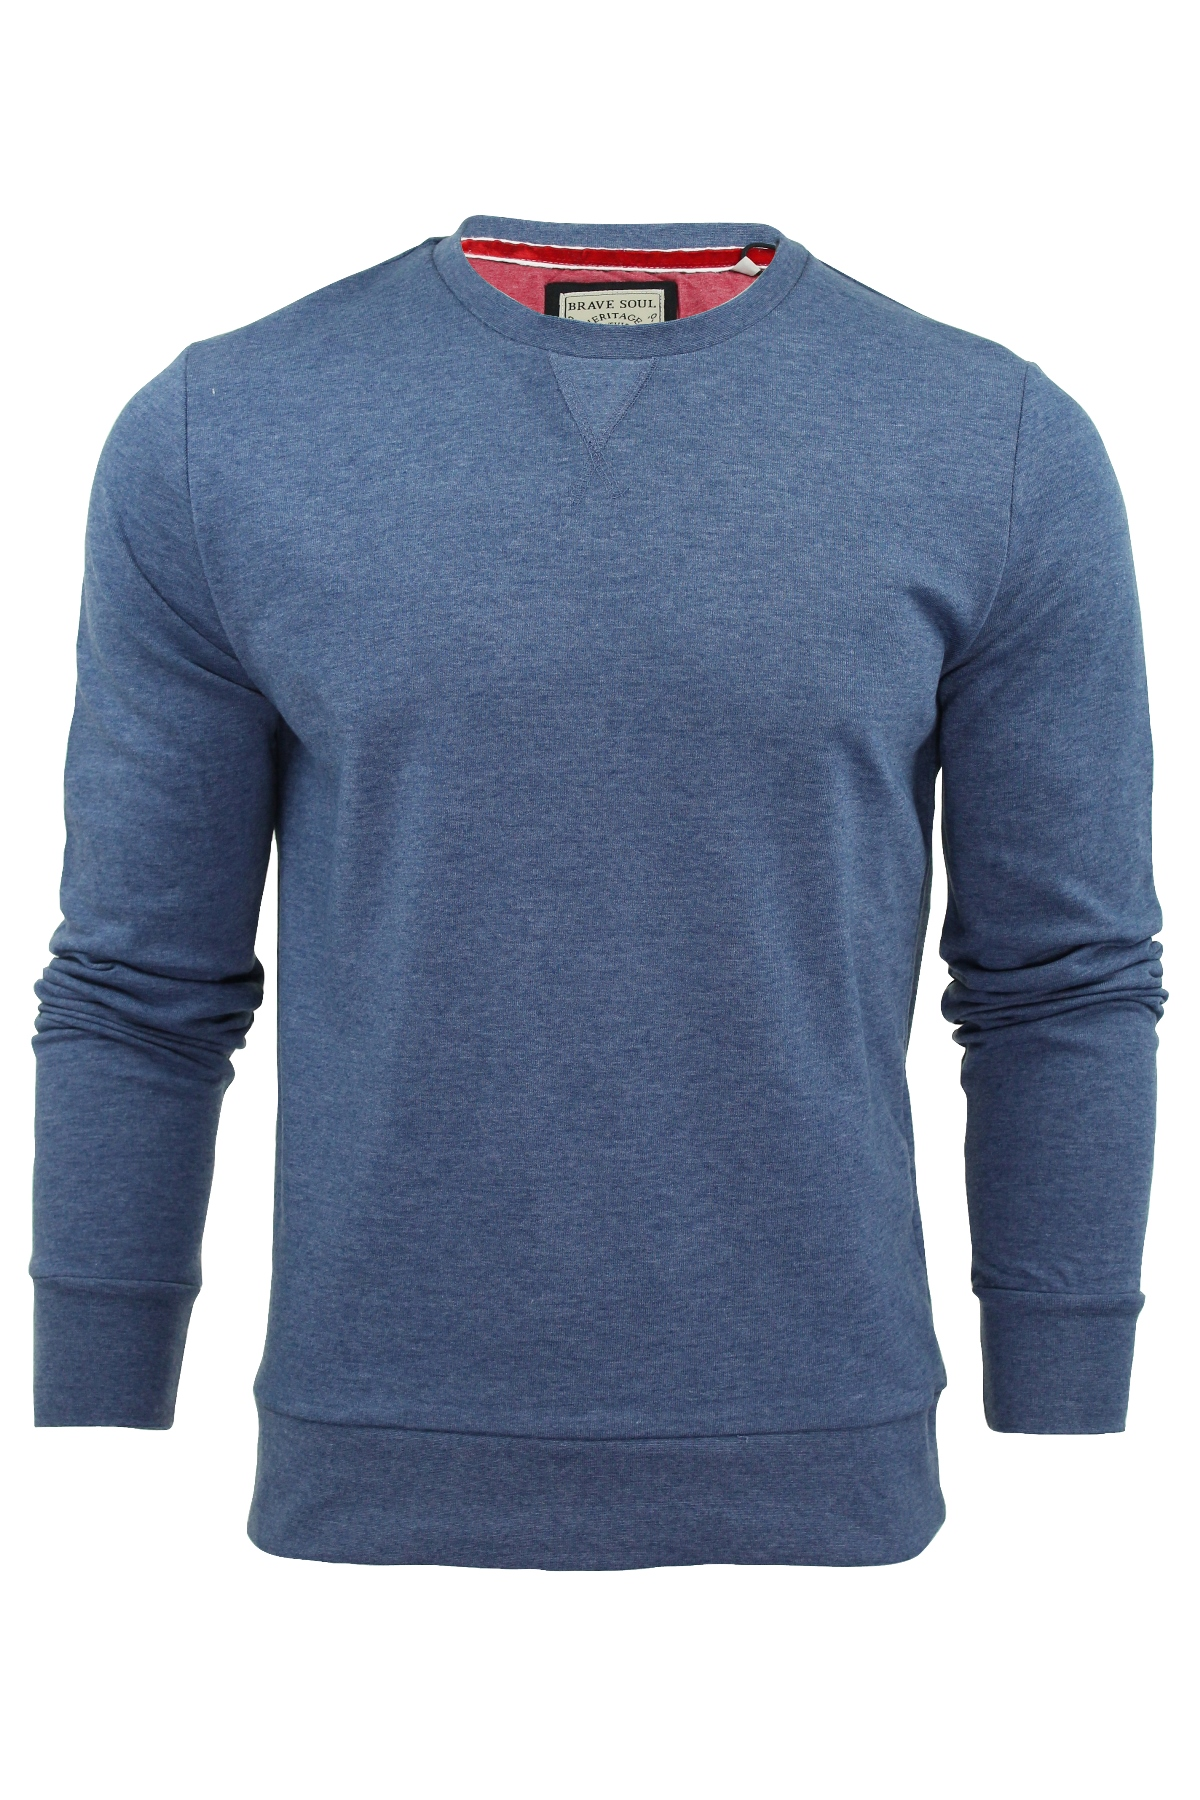 Mens-Sweater-Jumper-Brave-Soul-039-Jones-039-Crew-Neck